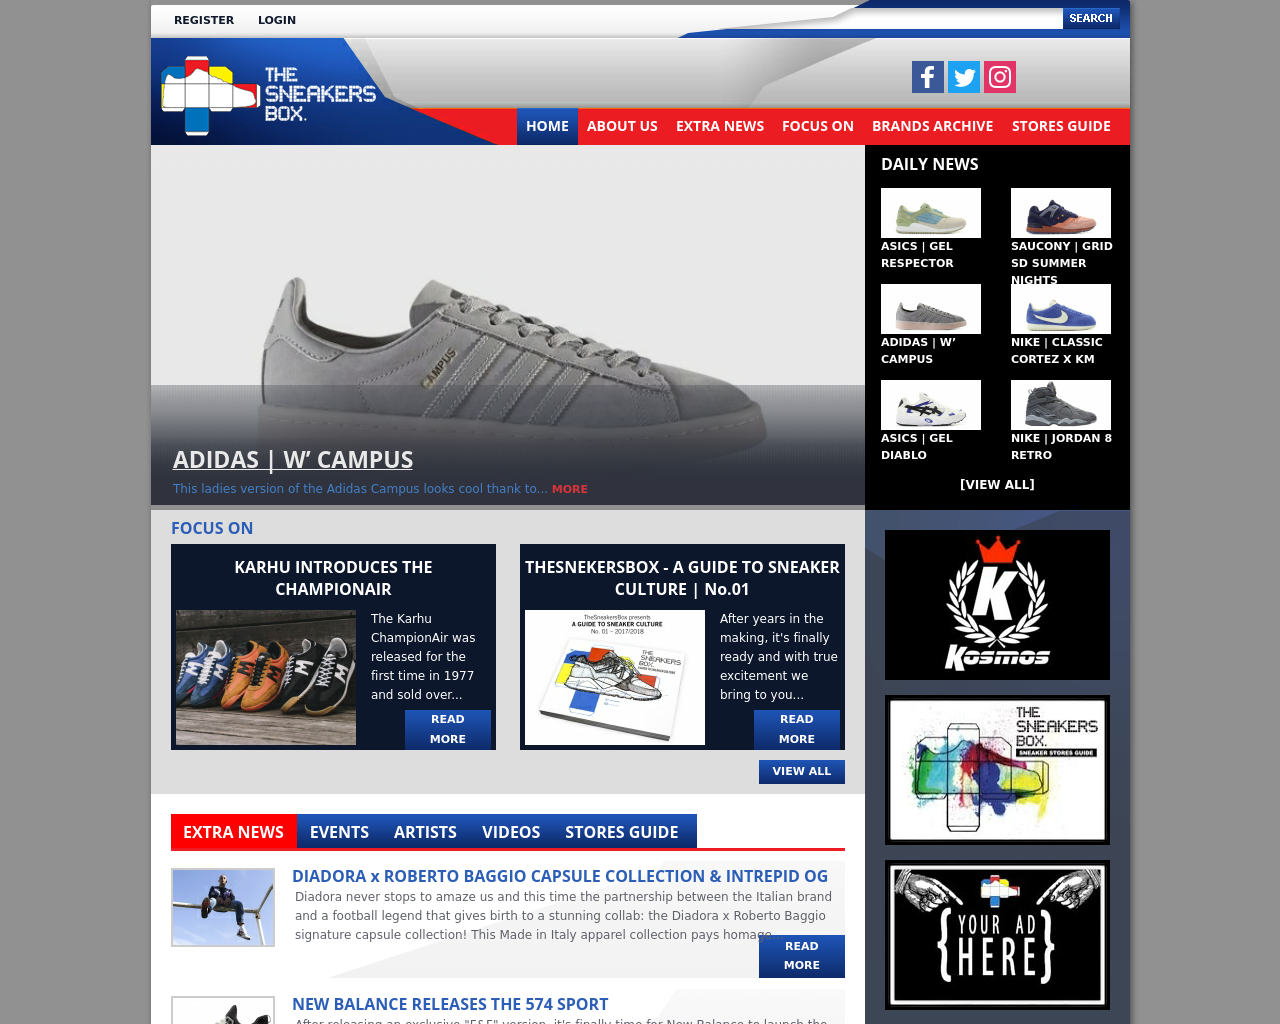 The-Sneakers-Box-Advertising-Reviews-Pricing